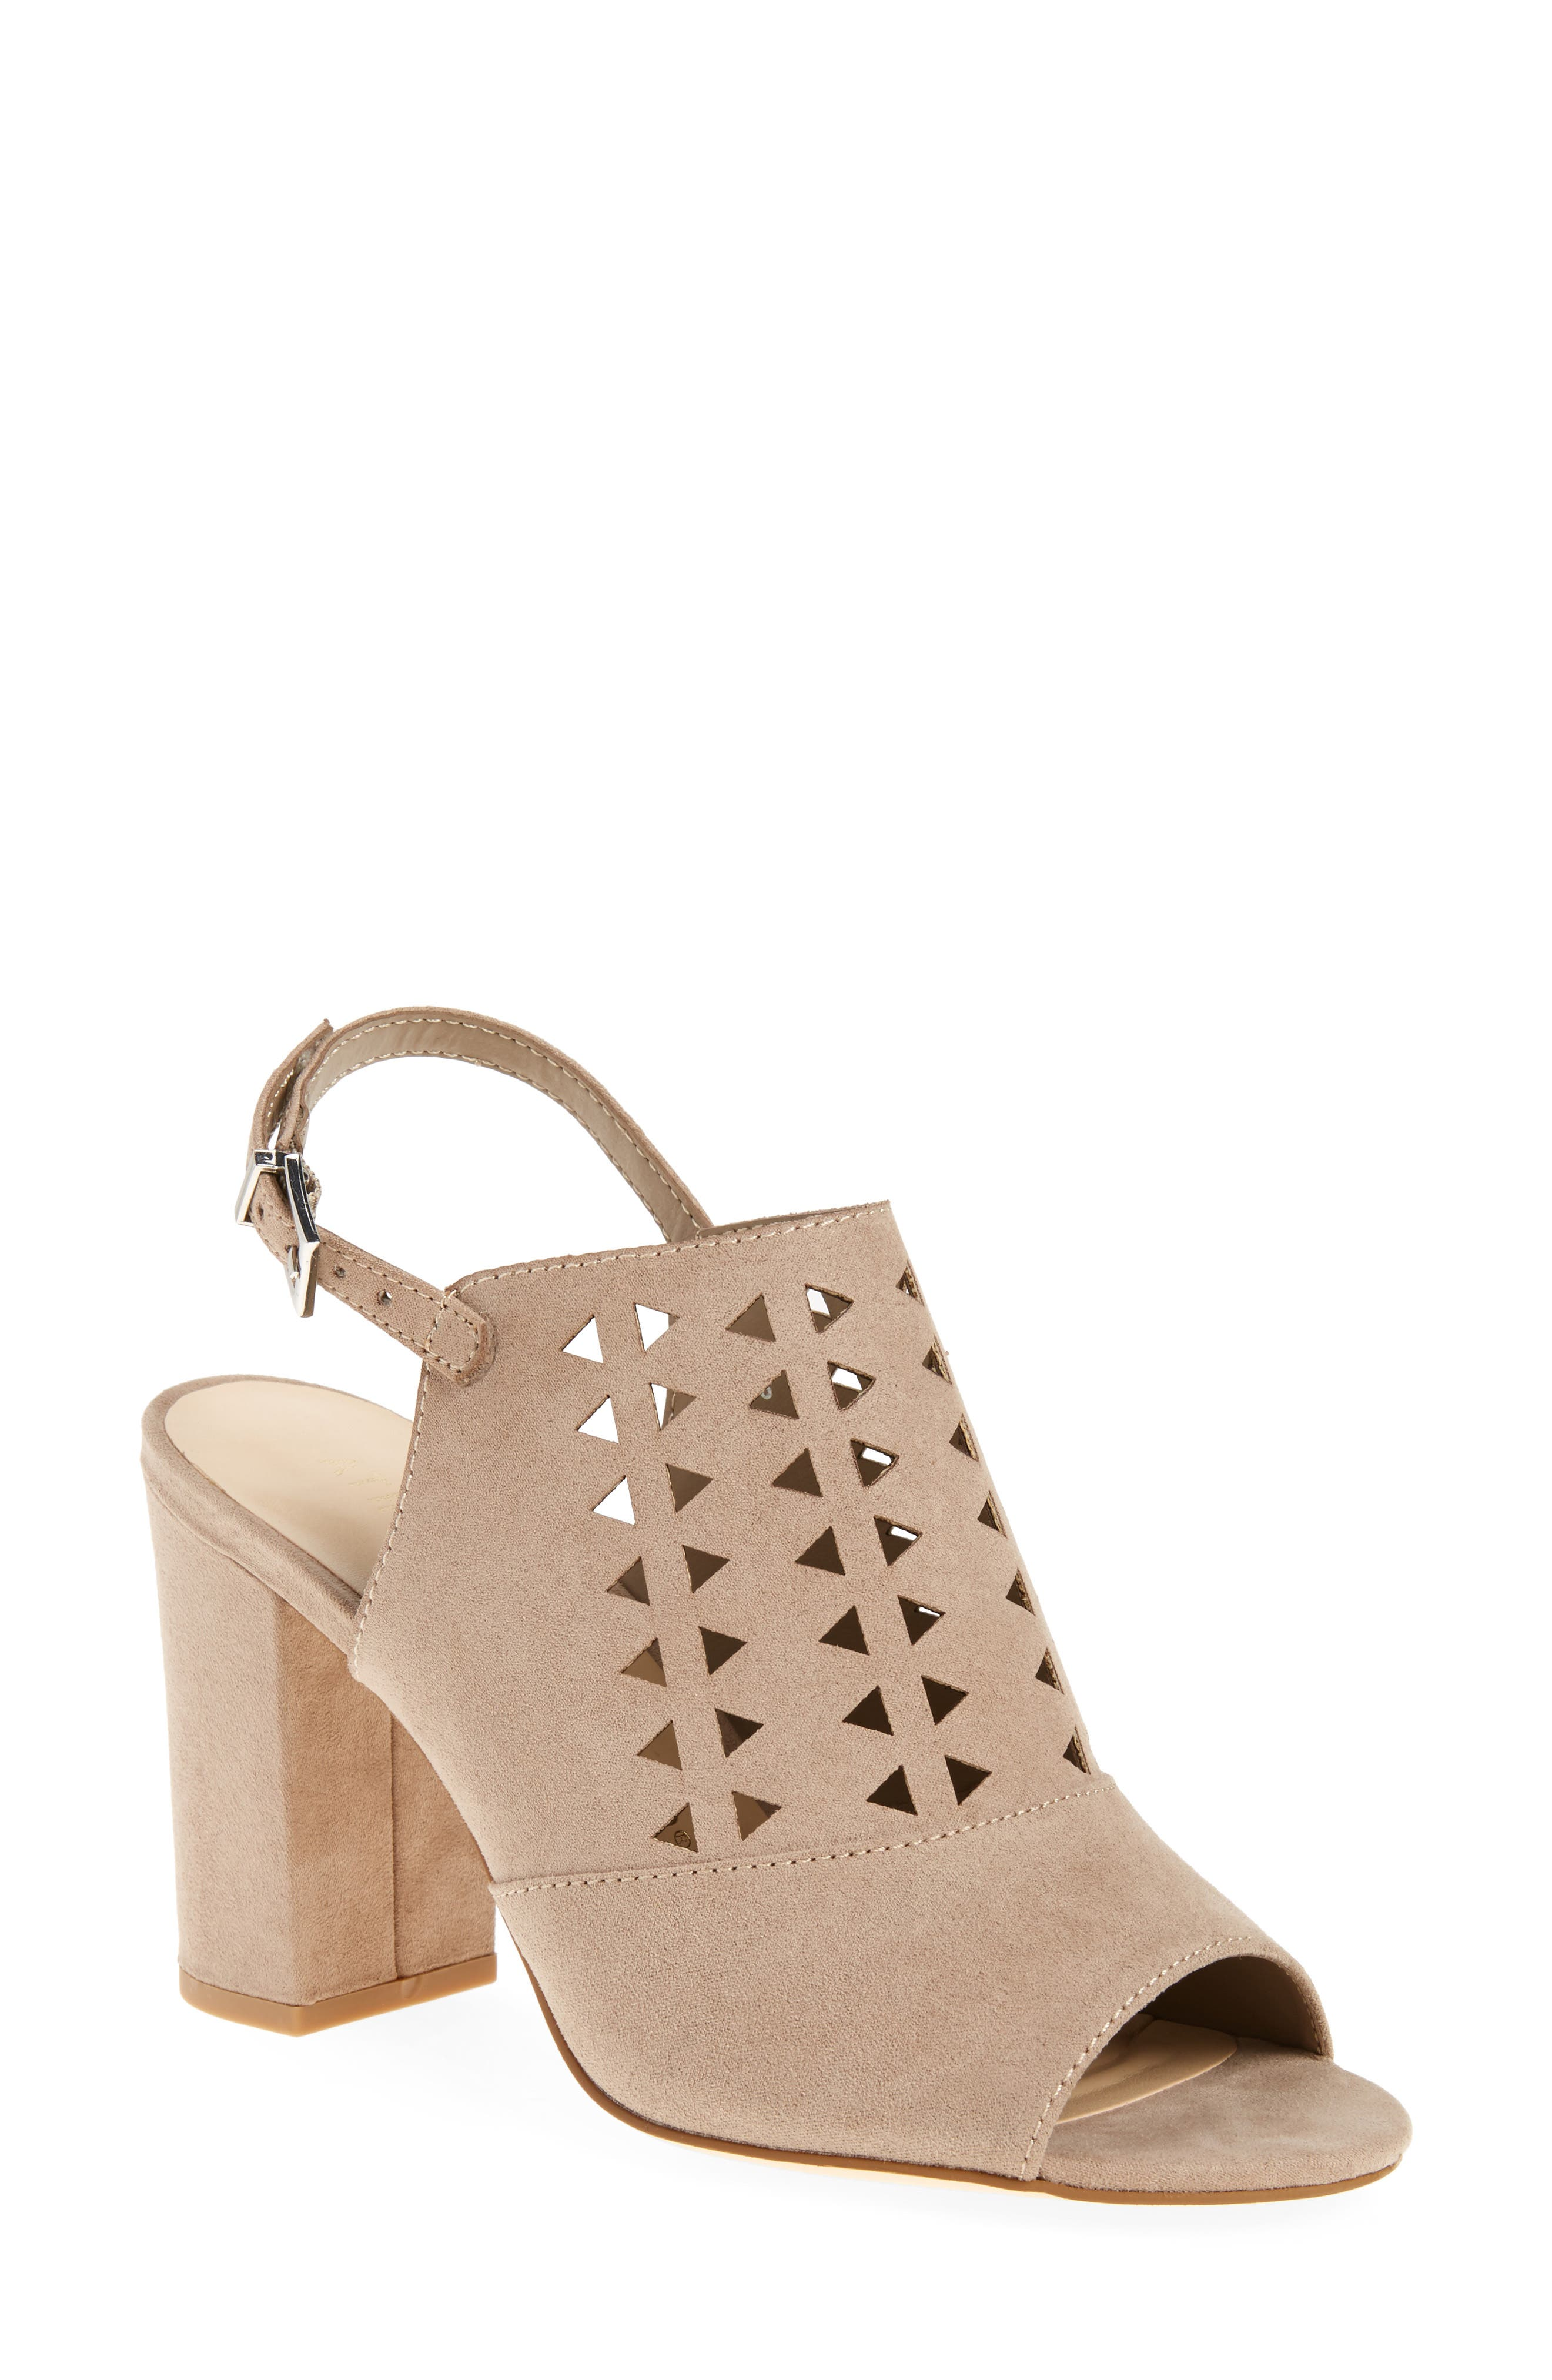 Nadiah Sandal,                         Main,                         color, Taupe Faux Suede